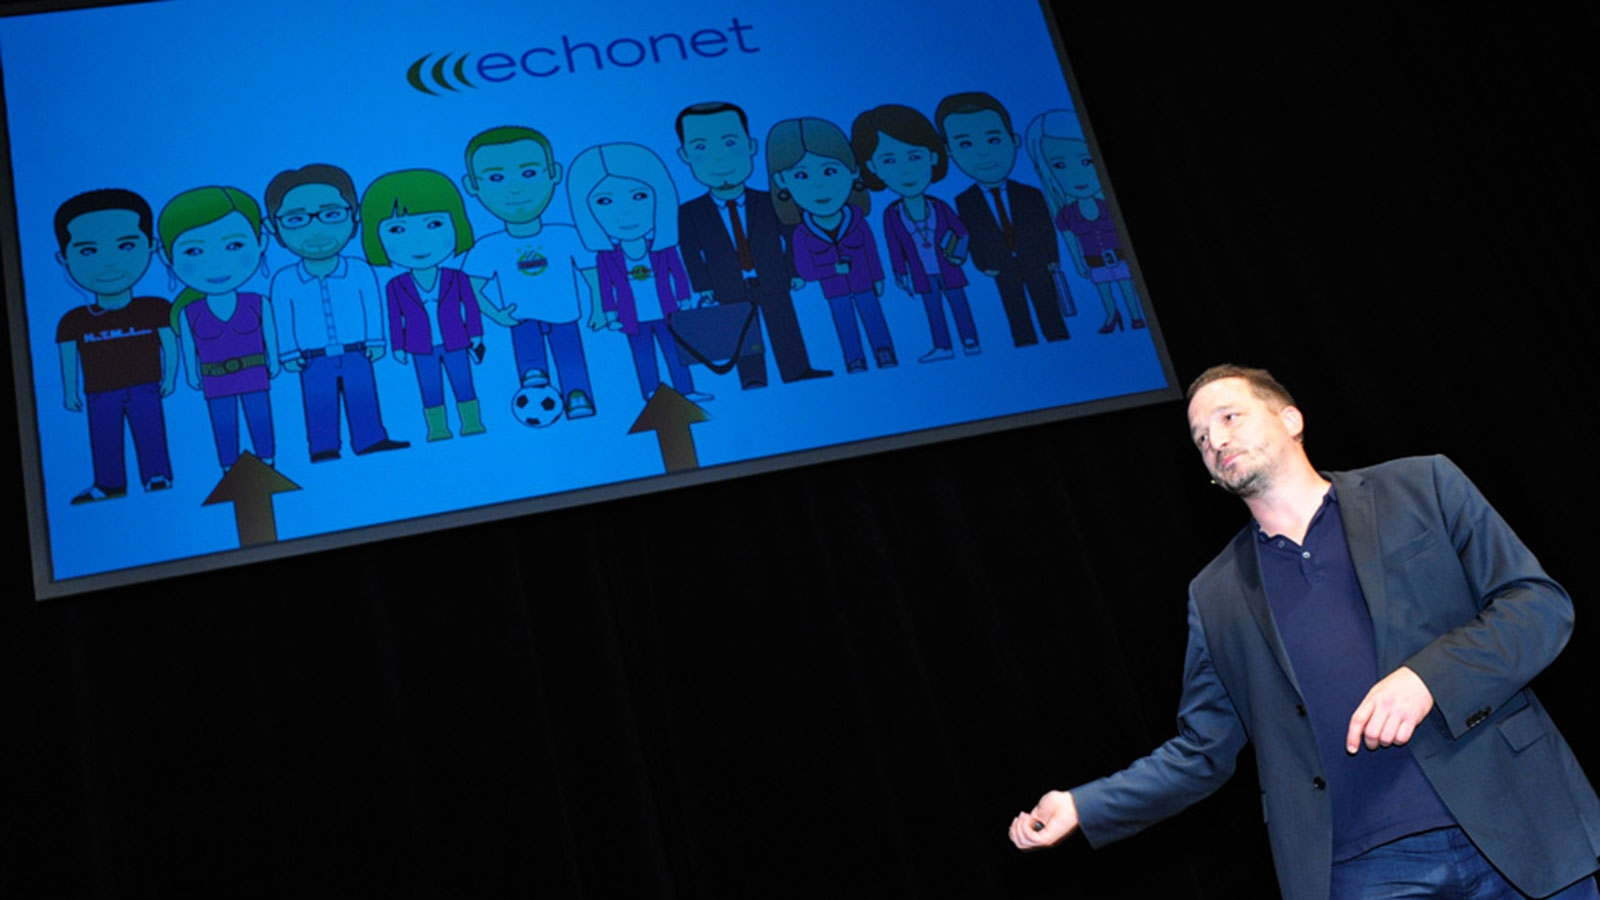 WKJB-Intranet-Präsentation 2013 / Roland Vidmar stellt echonet-Team vor © echonet communication